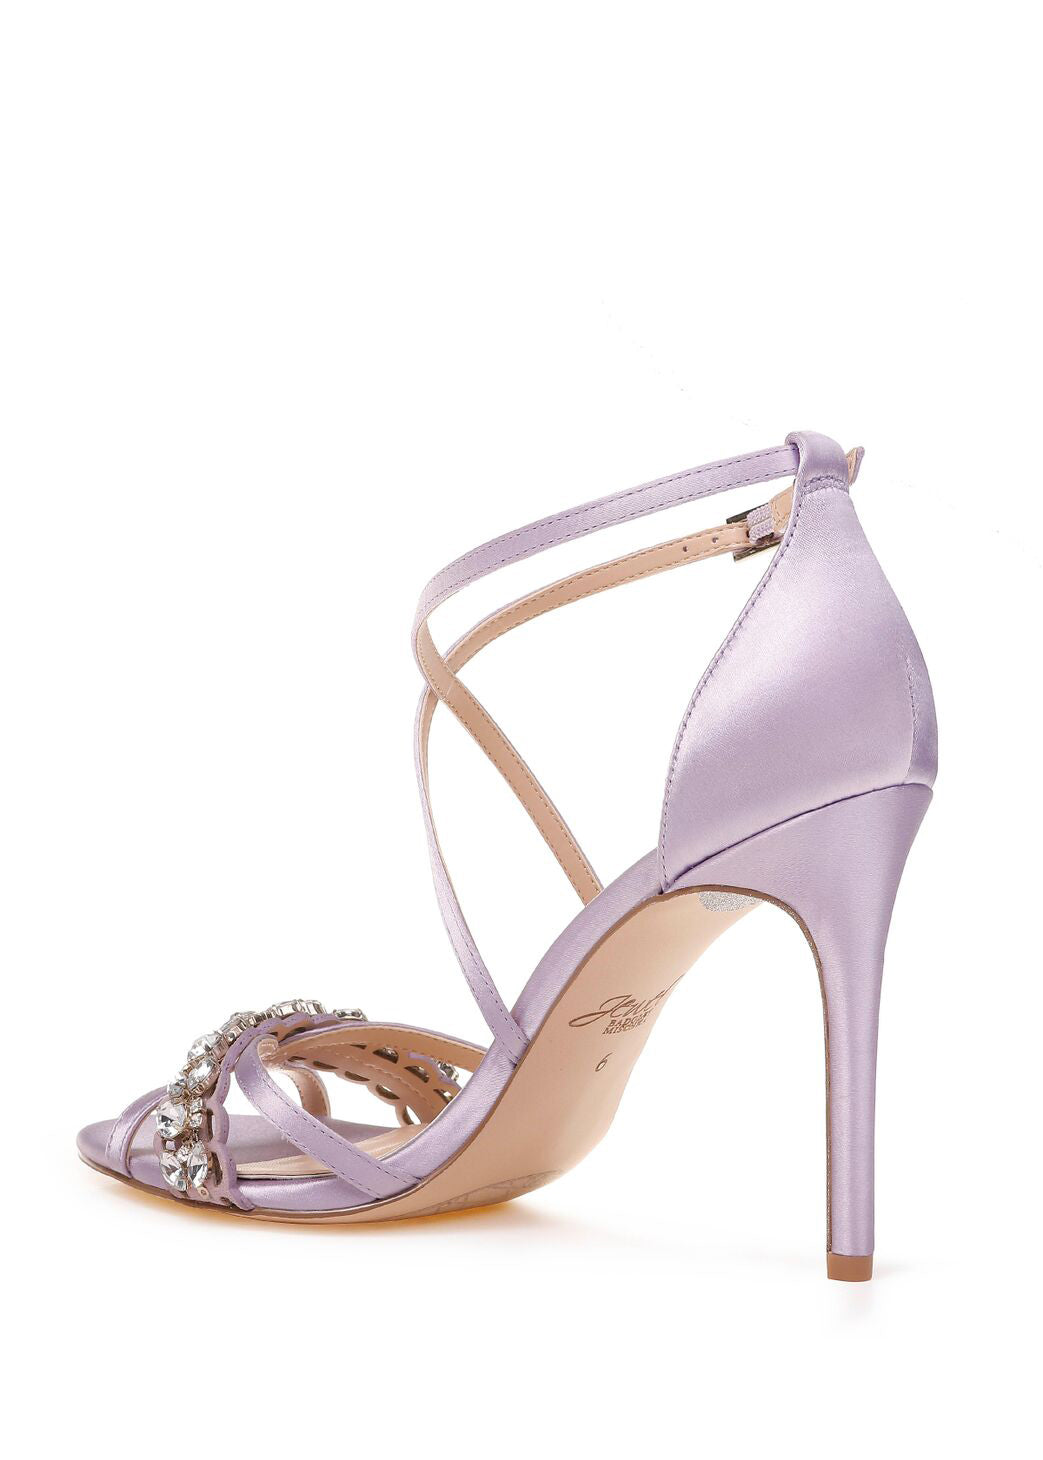 Gisele - Shoes - Badgley Mischka - Eternal Bridal